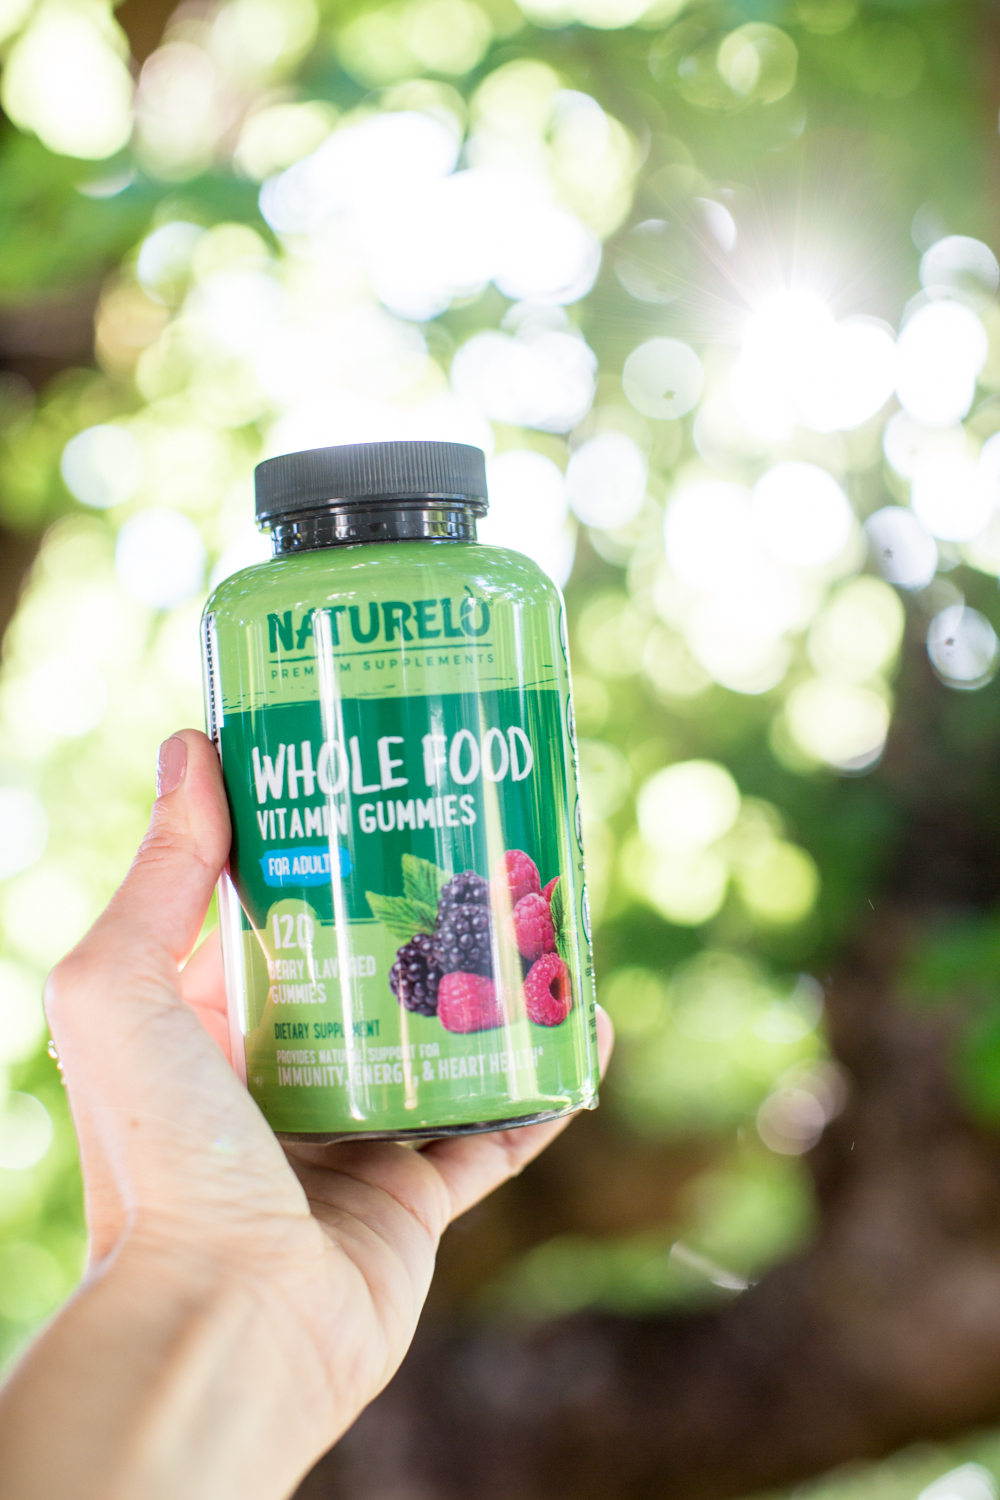 Vegan Vitamins from Naturelo Whole Foods | WorldofVegan.com #vegan #vitamins #naturelo #worldofvegan